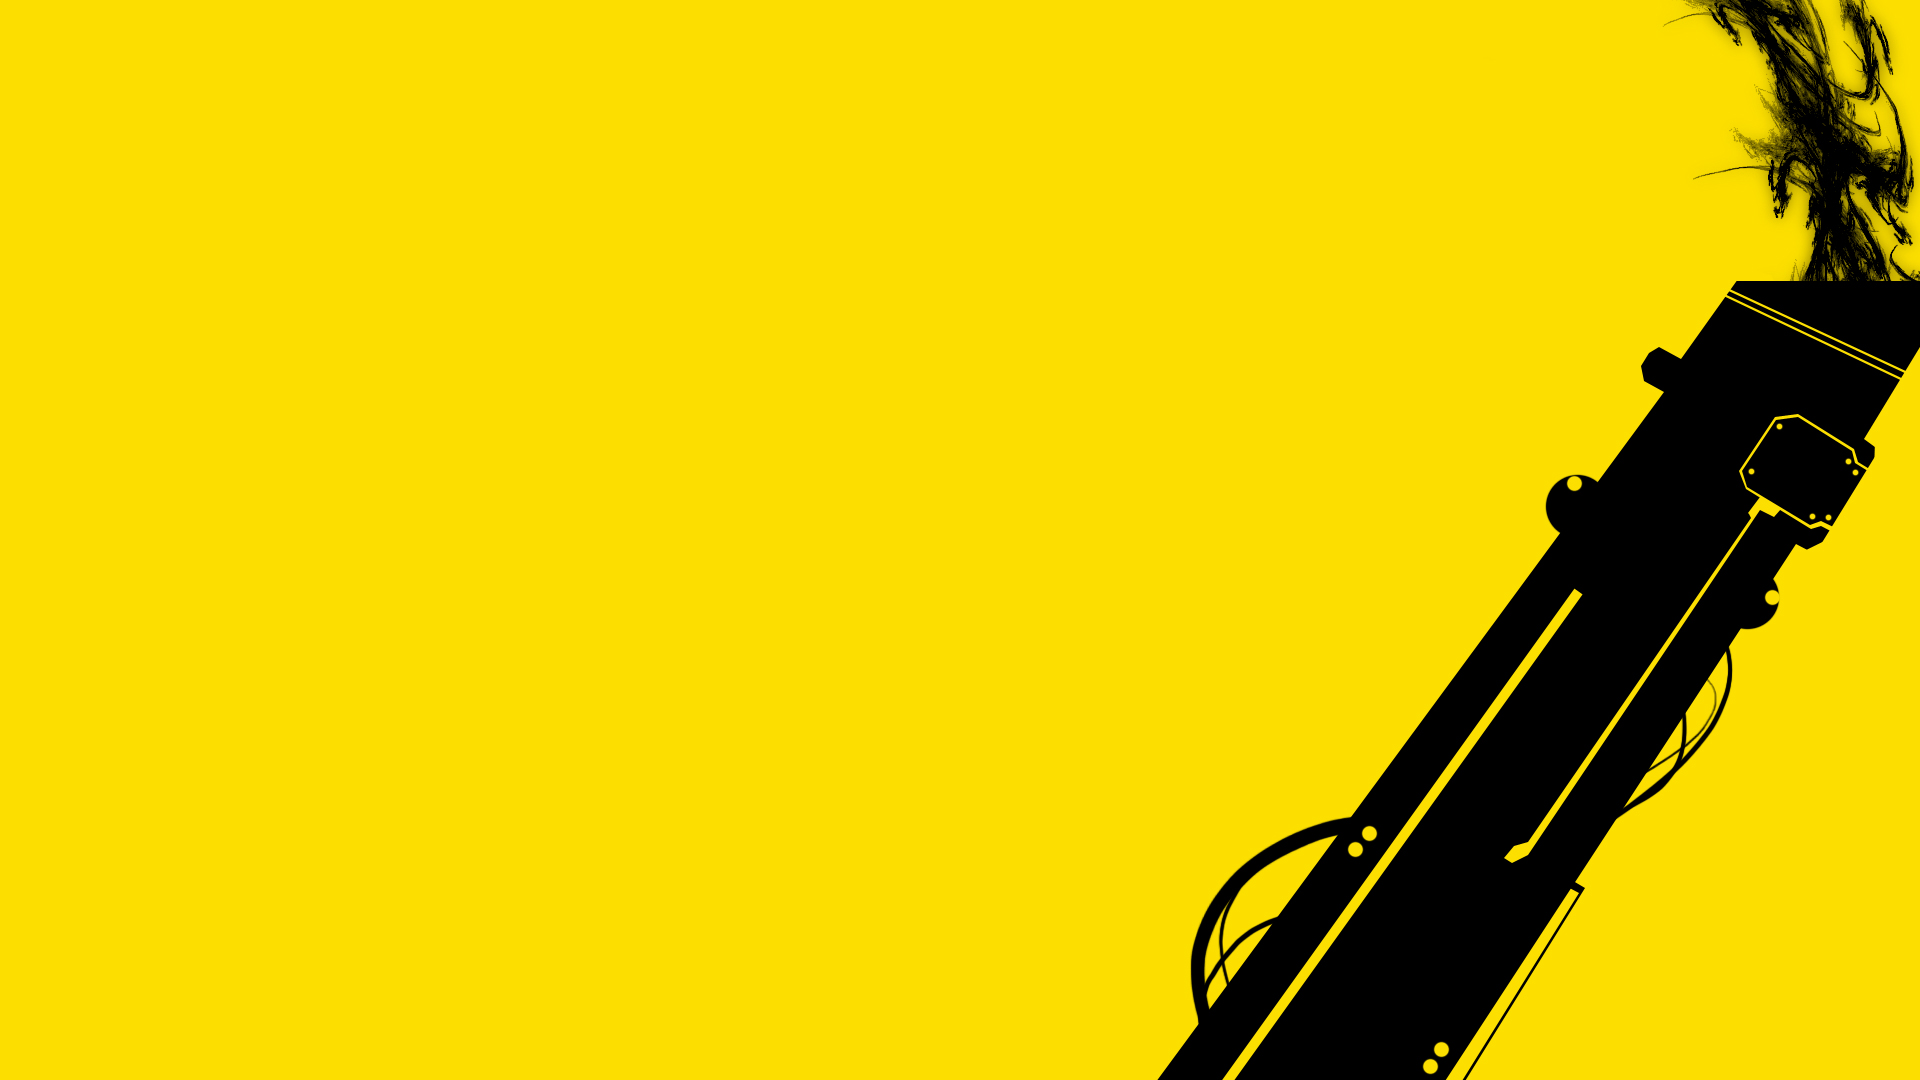 Yellow Wallpapers Android Apps on Google Play